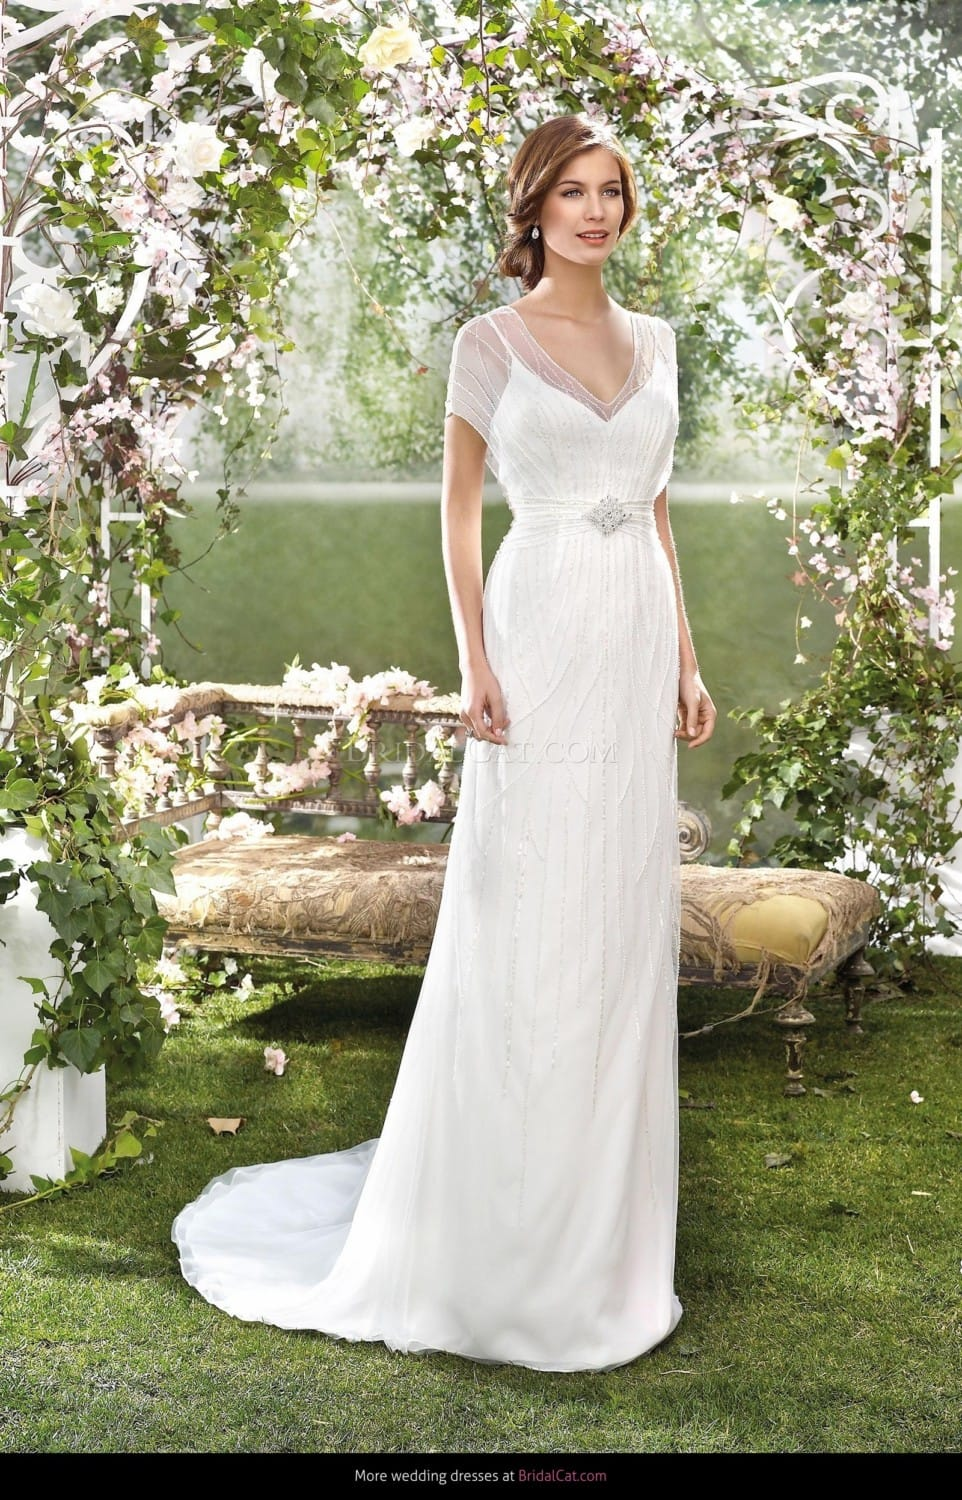 Fara sposa 5811 wedding dress sell my wedding dress for Sell wedding dress online